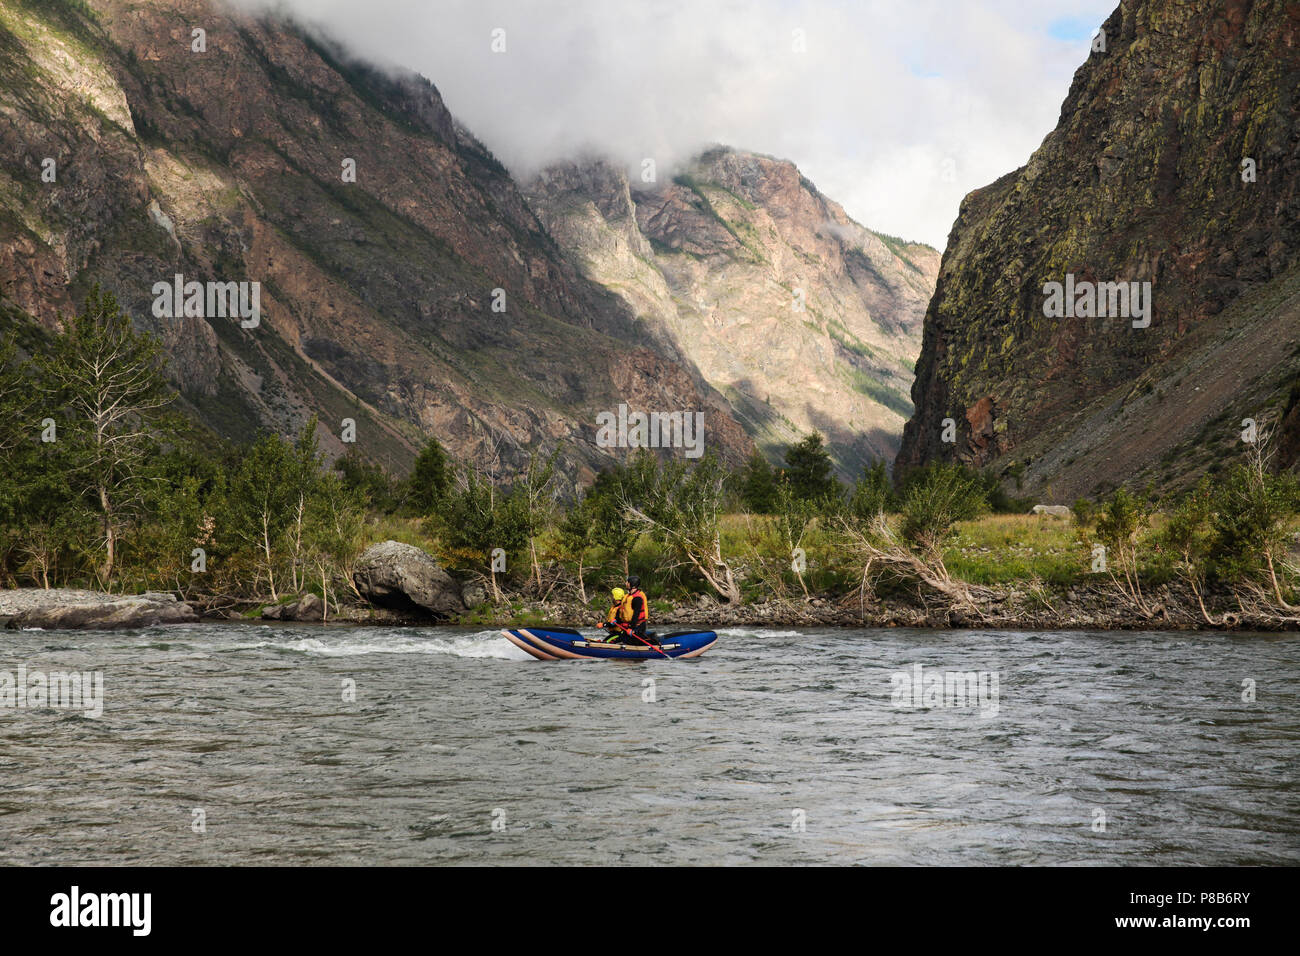 people on kayaks rafting on mountain river and beautiful landscape, Altai, Russia - Stock Image